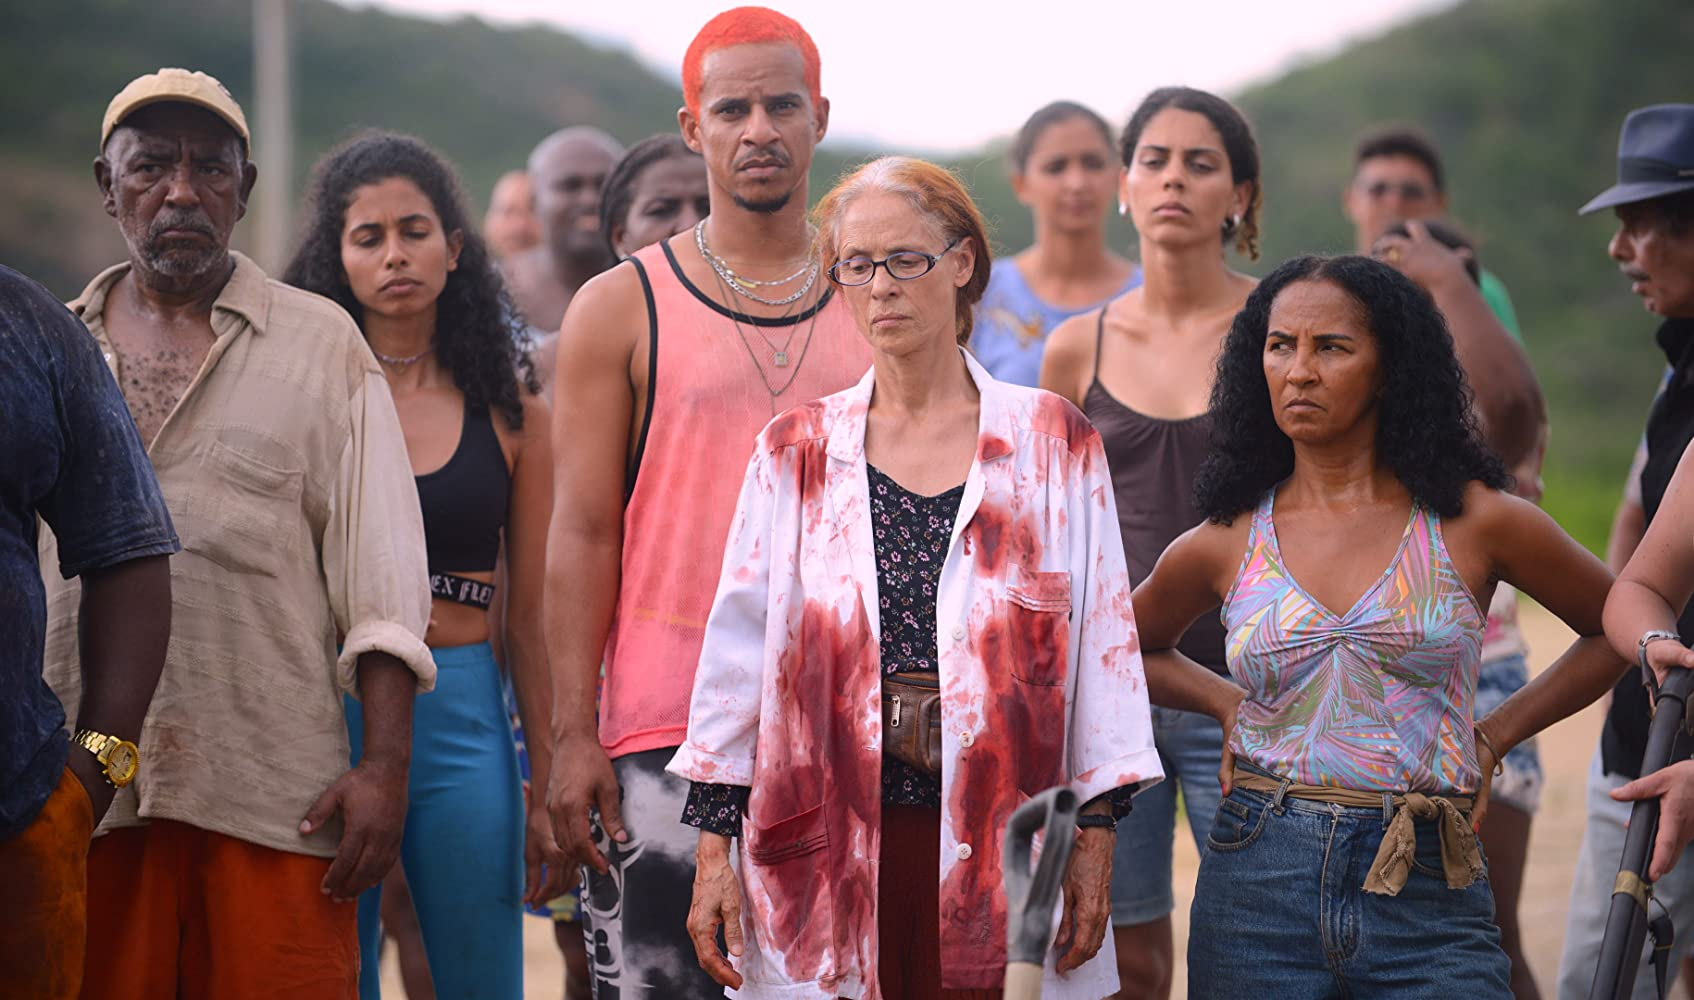 Sônia Braga and Luciana Souza in Bacurau (2019)